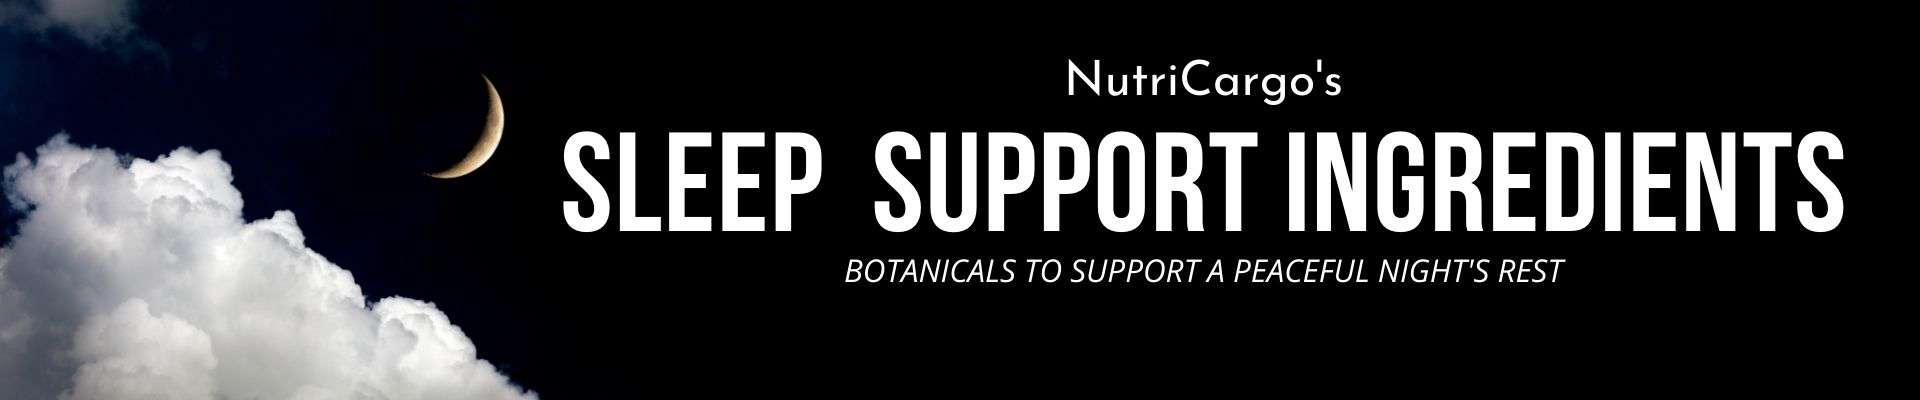 Sleep Support Ingredients From NutriCargo, LLC